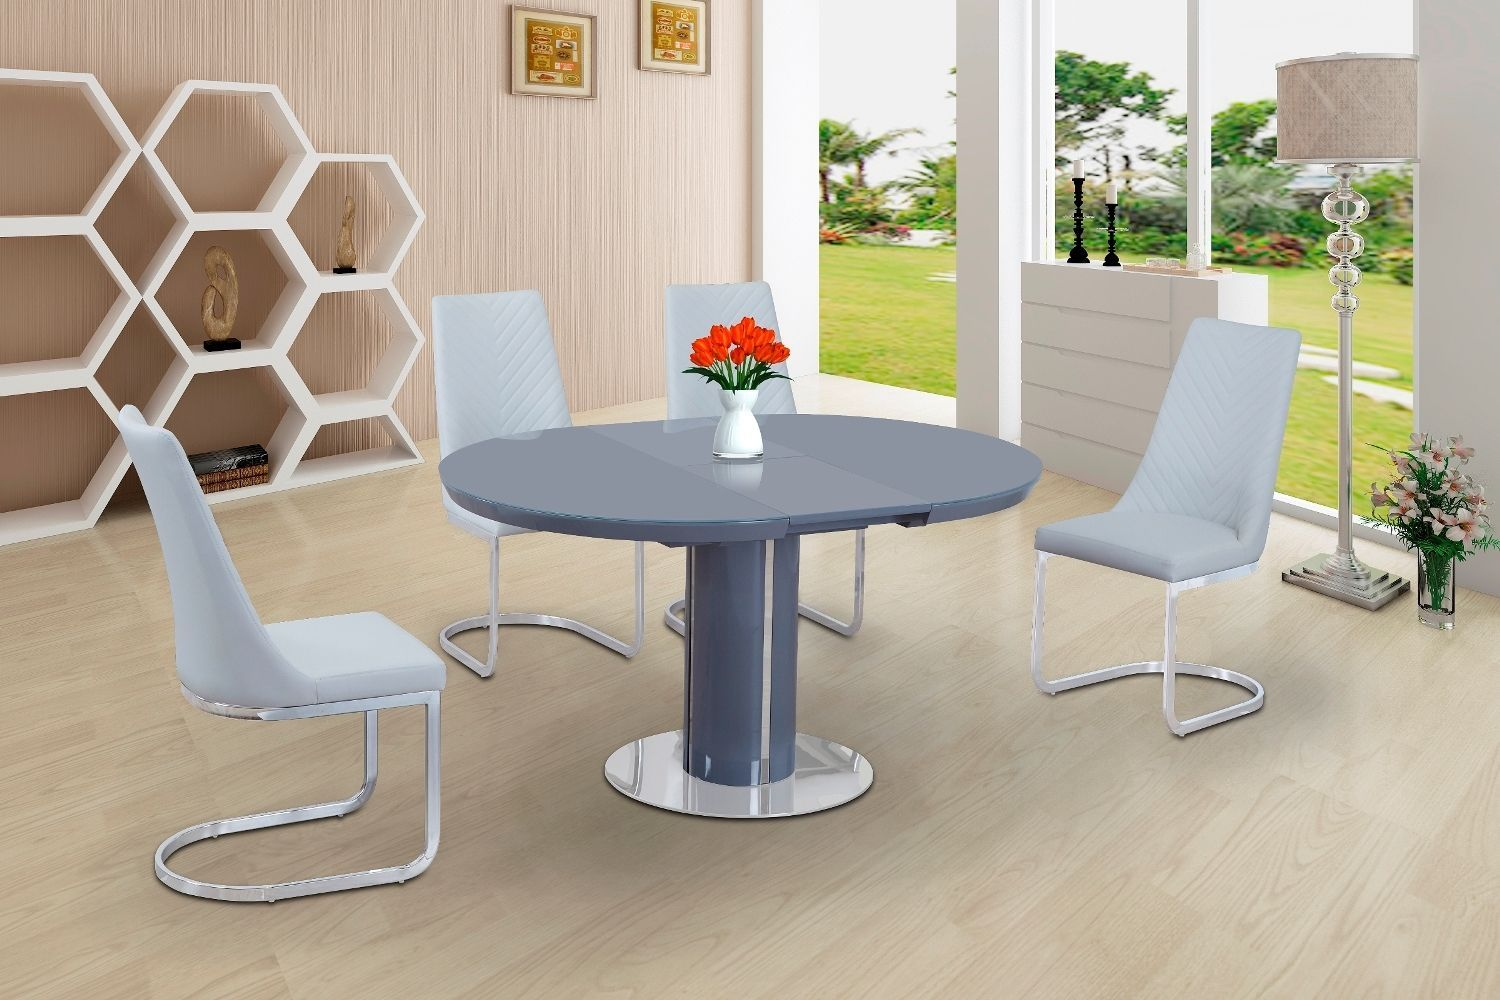 ECLIPSE Round Oval Gloss Glass Extending 110 to 145 cm Dining